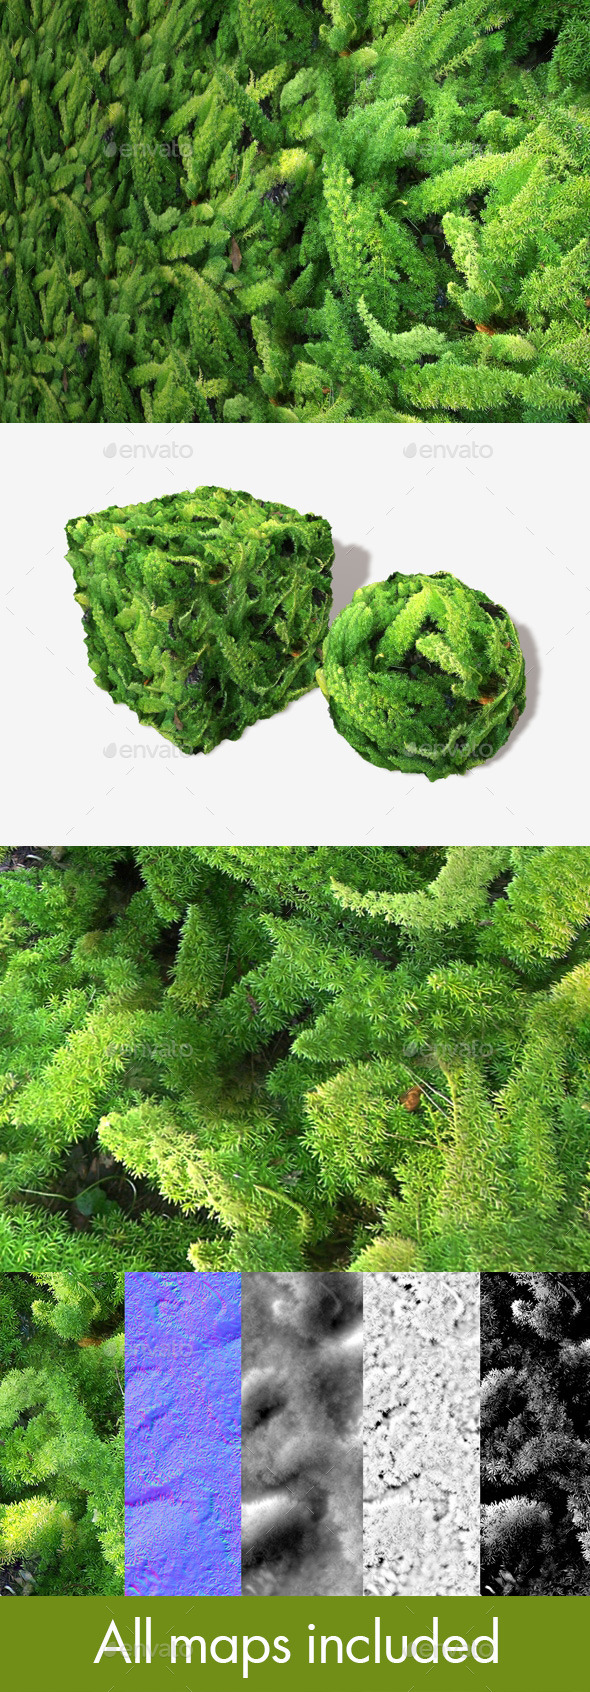 Furry Jungle Plants Seamless Texture